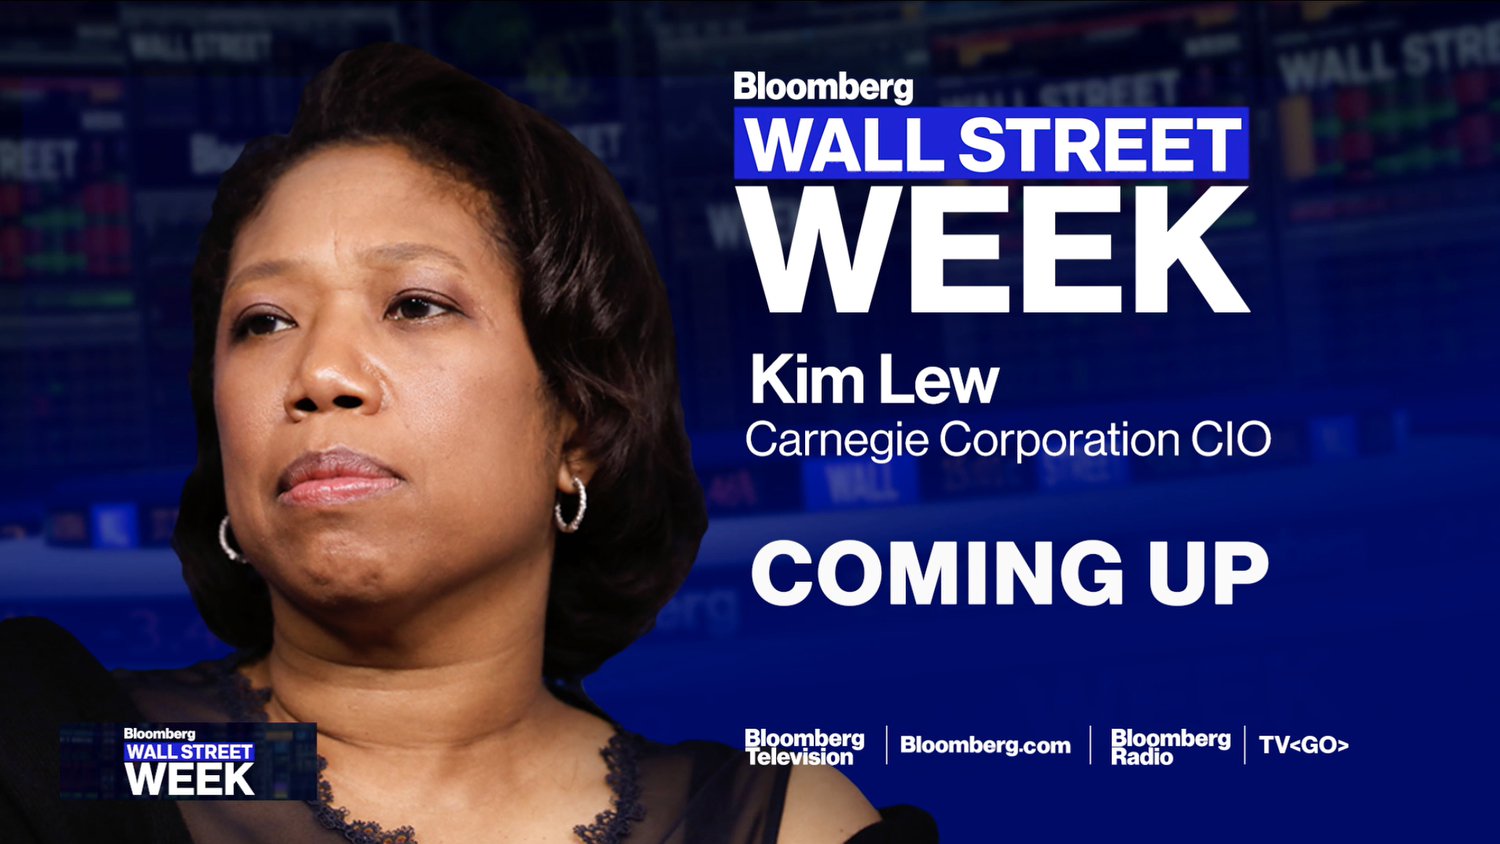 ncs_Bloomberg-Wall-Street-Week-Graphics_0015